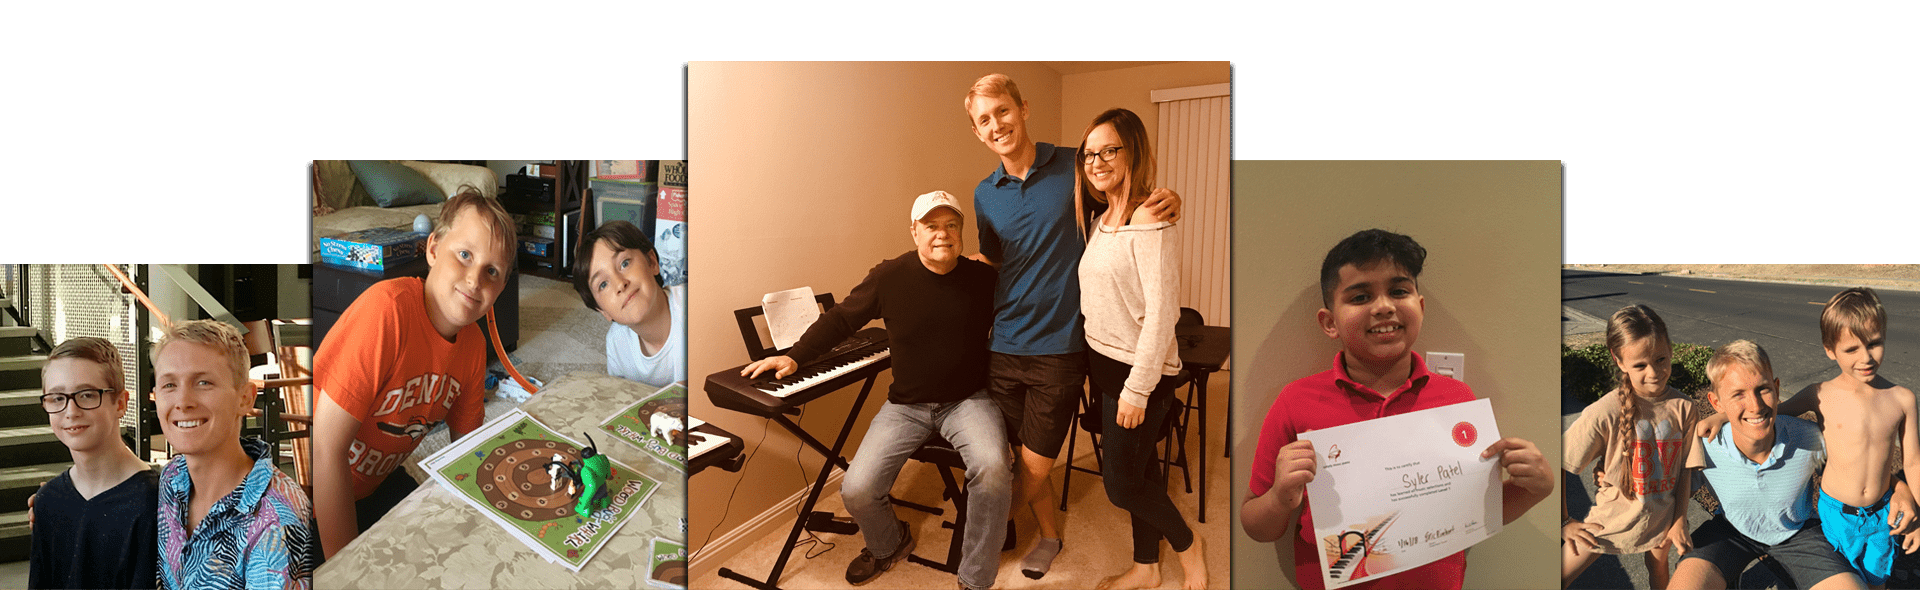 Eric Rinehart's offers mobile piano lessons in your home. For those in Orange County, you are in luck to a new breakthough piano method known as Simply Music offered in the comfort of your own home.